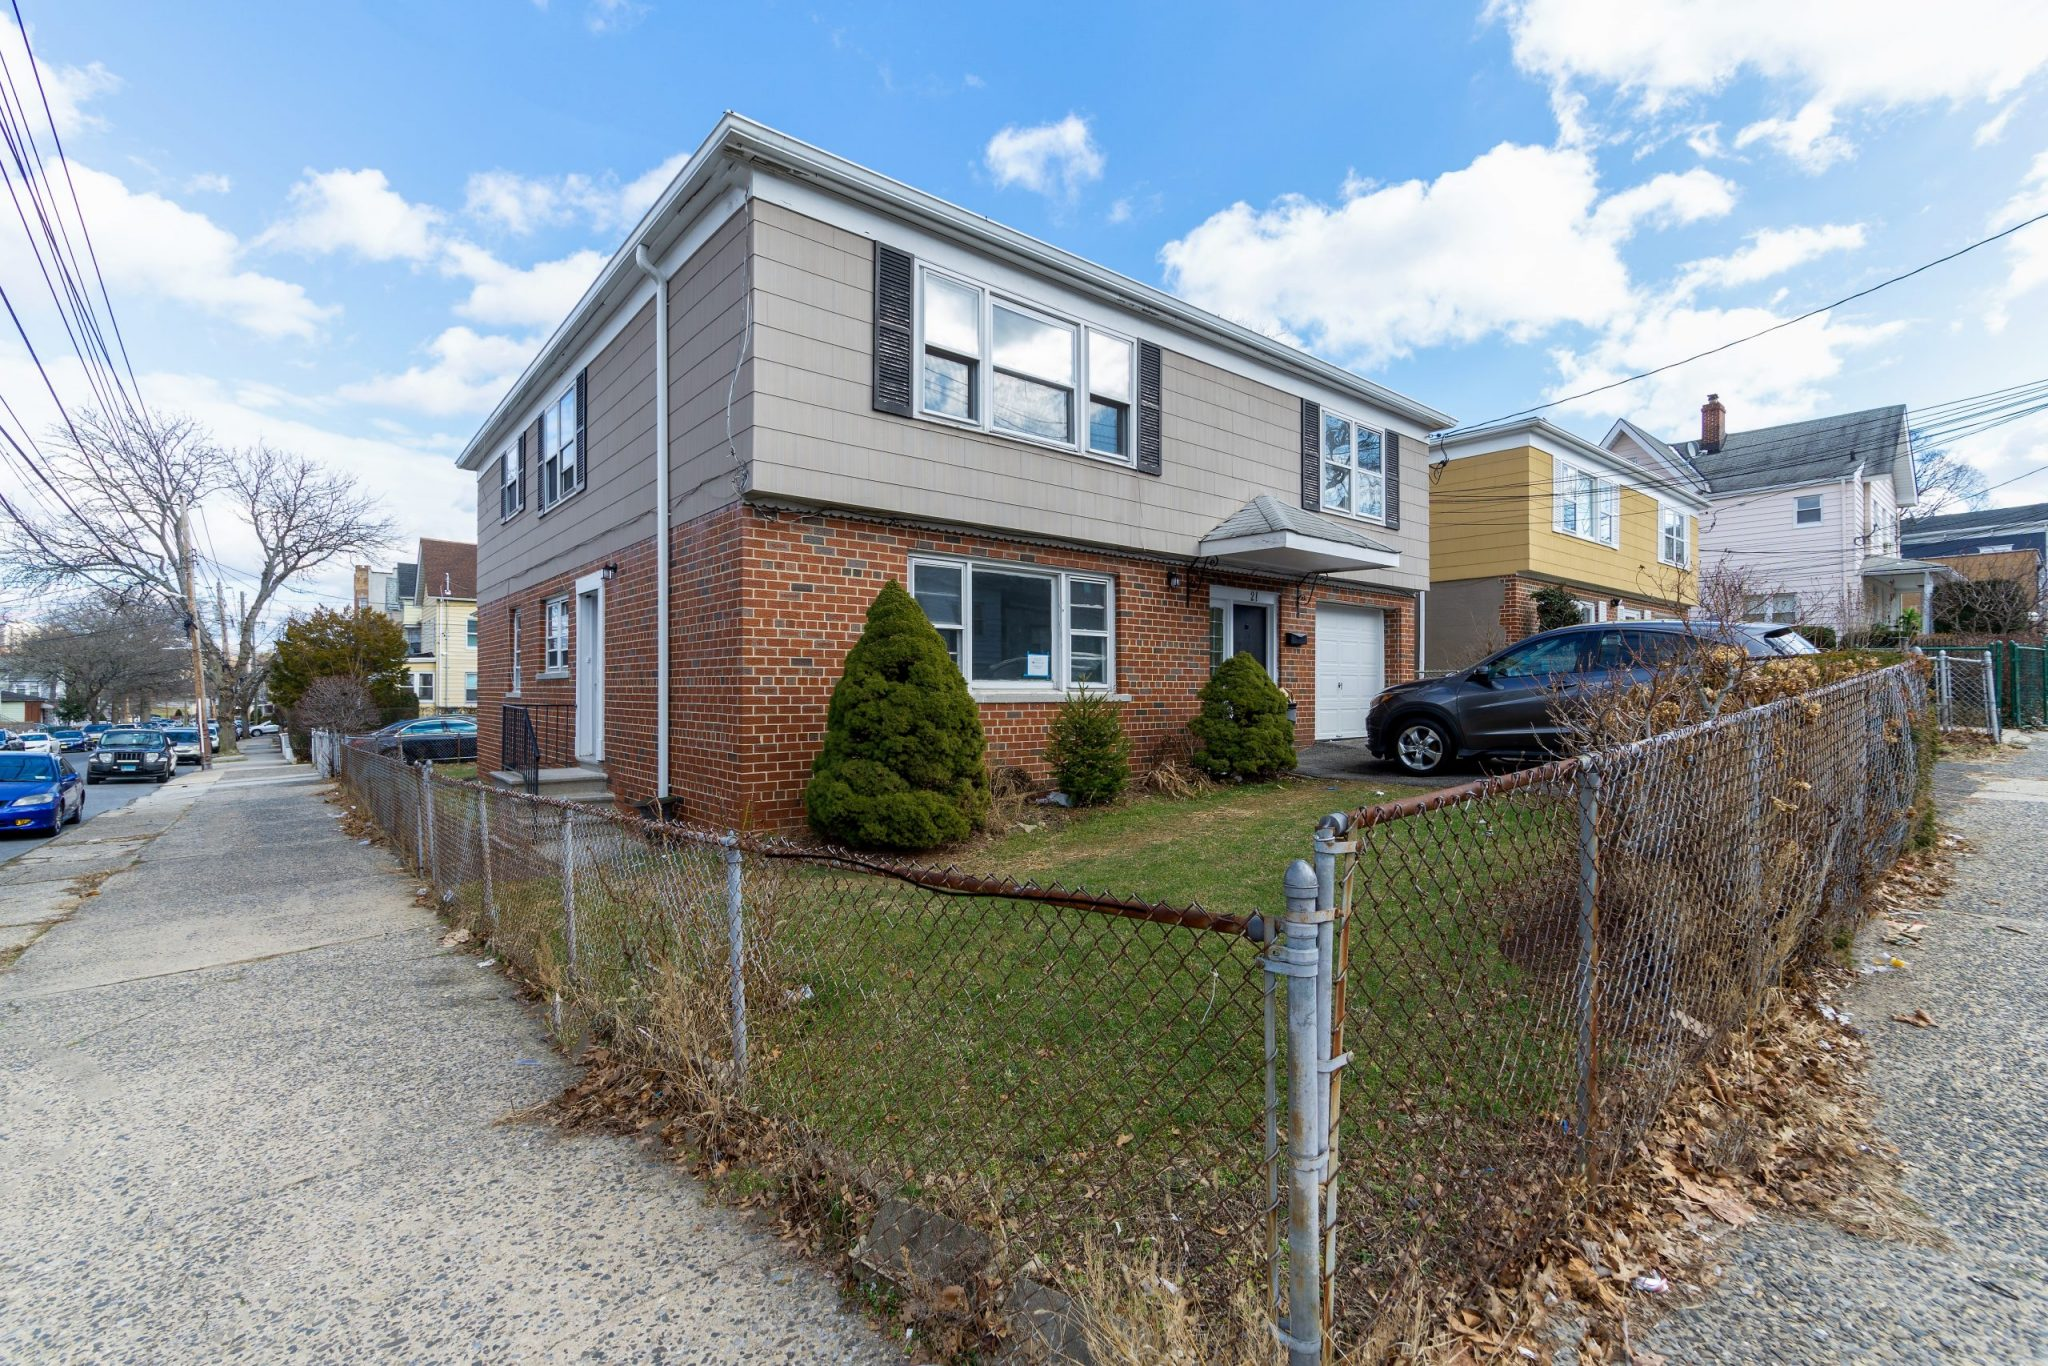 Two Family for sale in Mount Vernon, Bronx NY 10550. Corner, Detach 2 Family in a Tree Lined Bock!